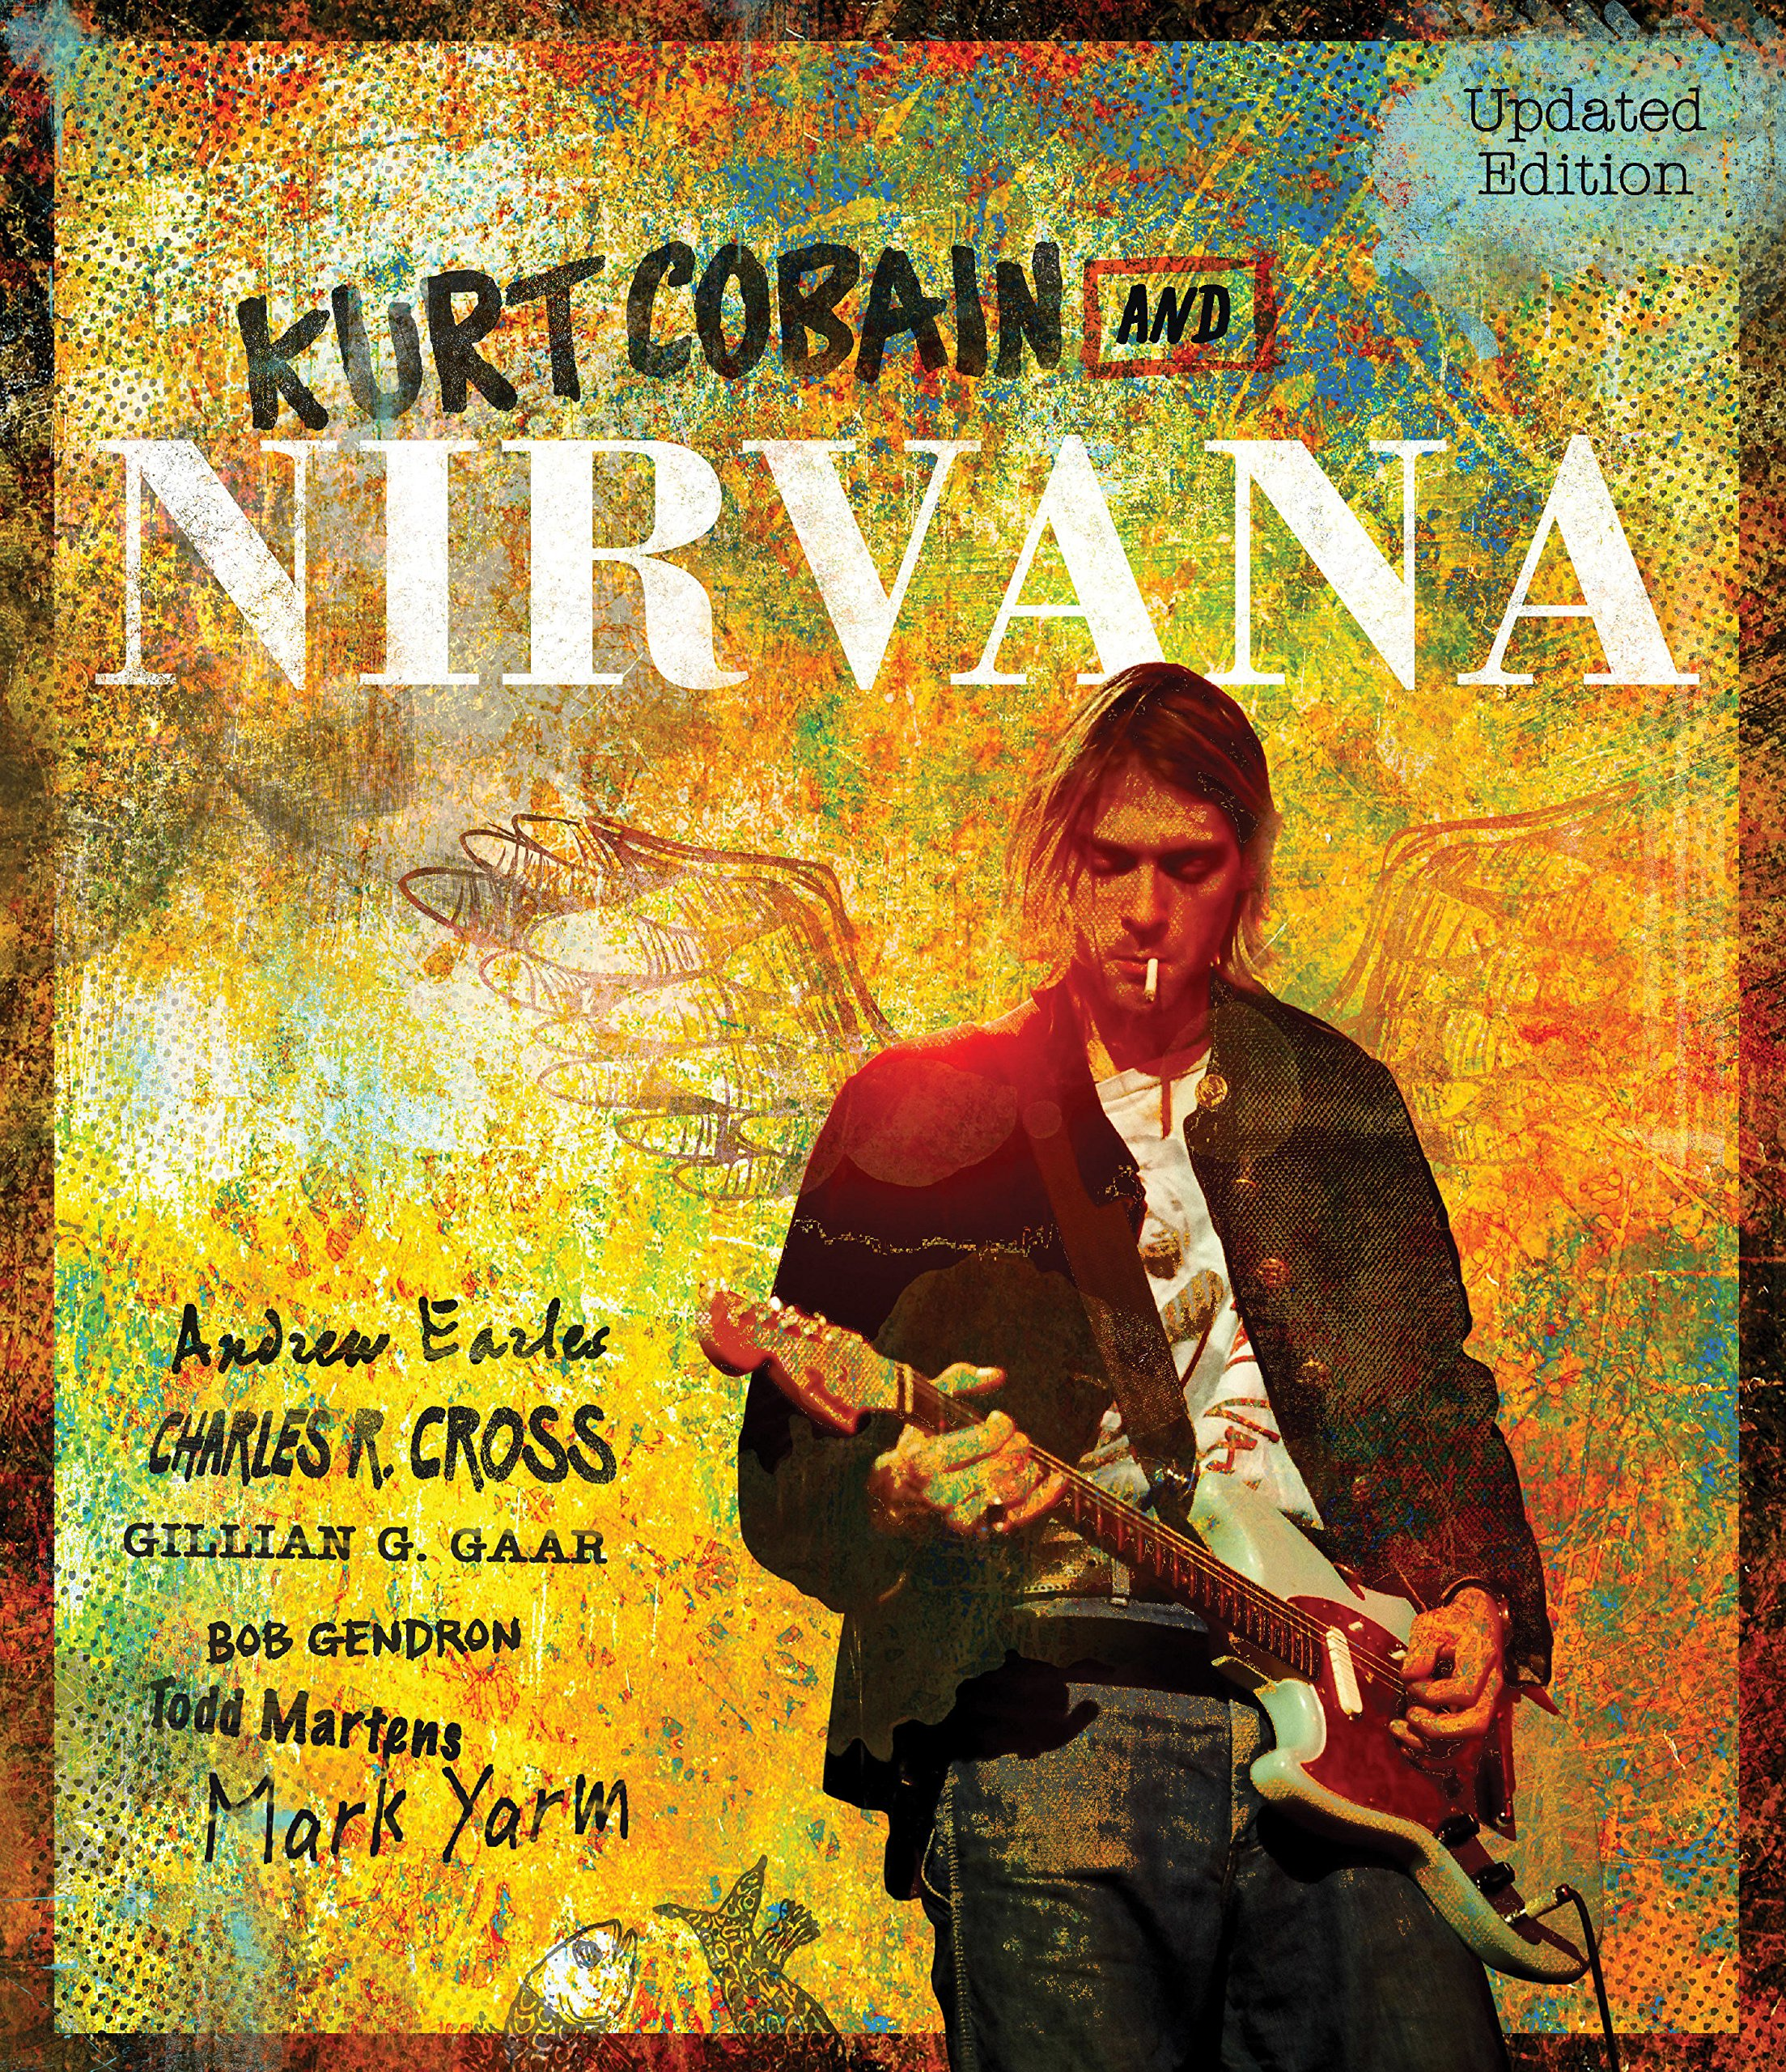 Kurt Cobain and Nirvana - Updated Edition: The Complete Illustrated History ebook